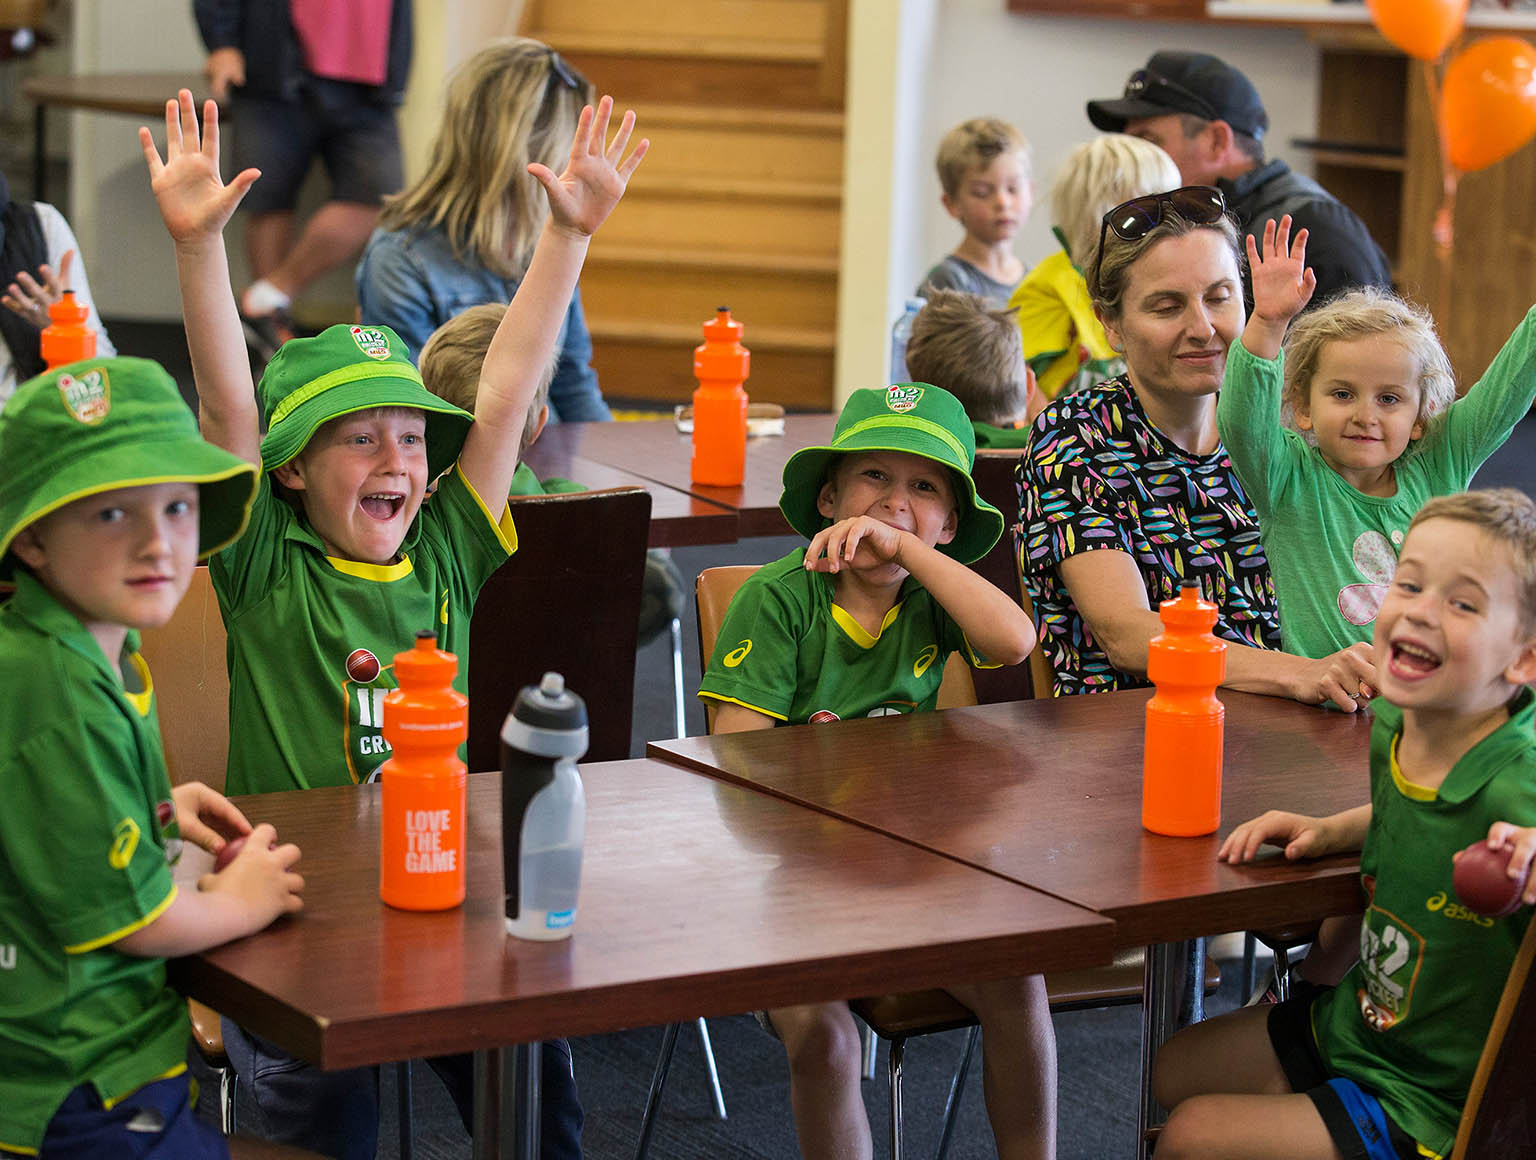 Five young boys in green and gold cricket gear sitting laughing at a table with a woman and her young daughter